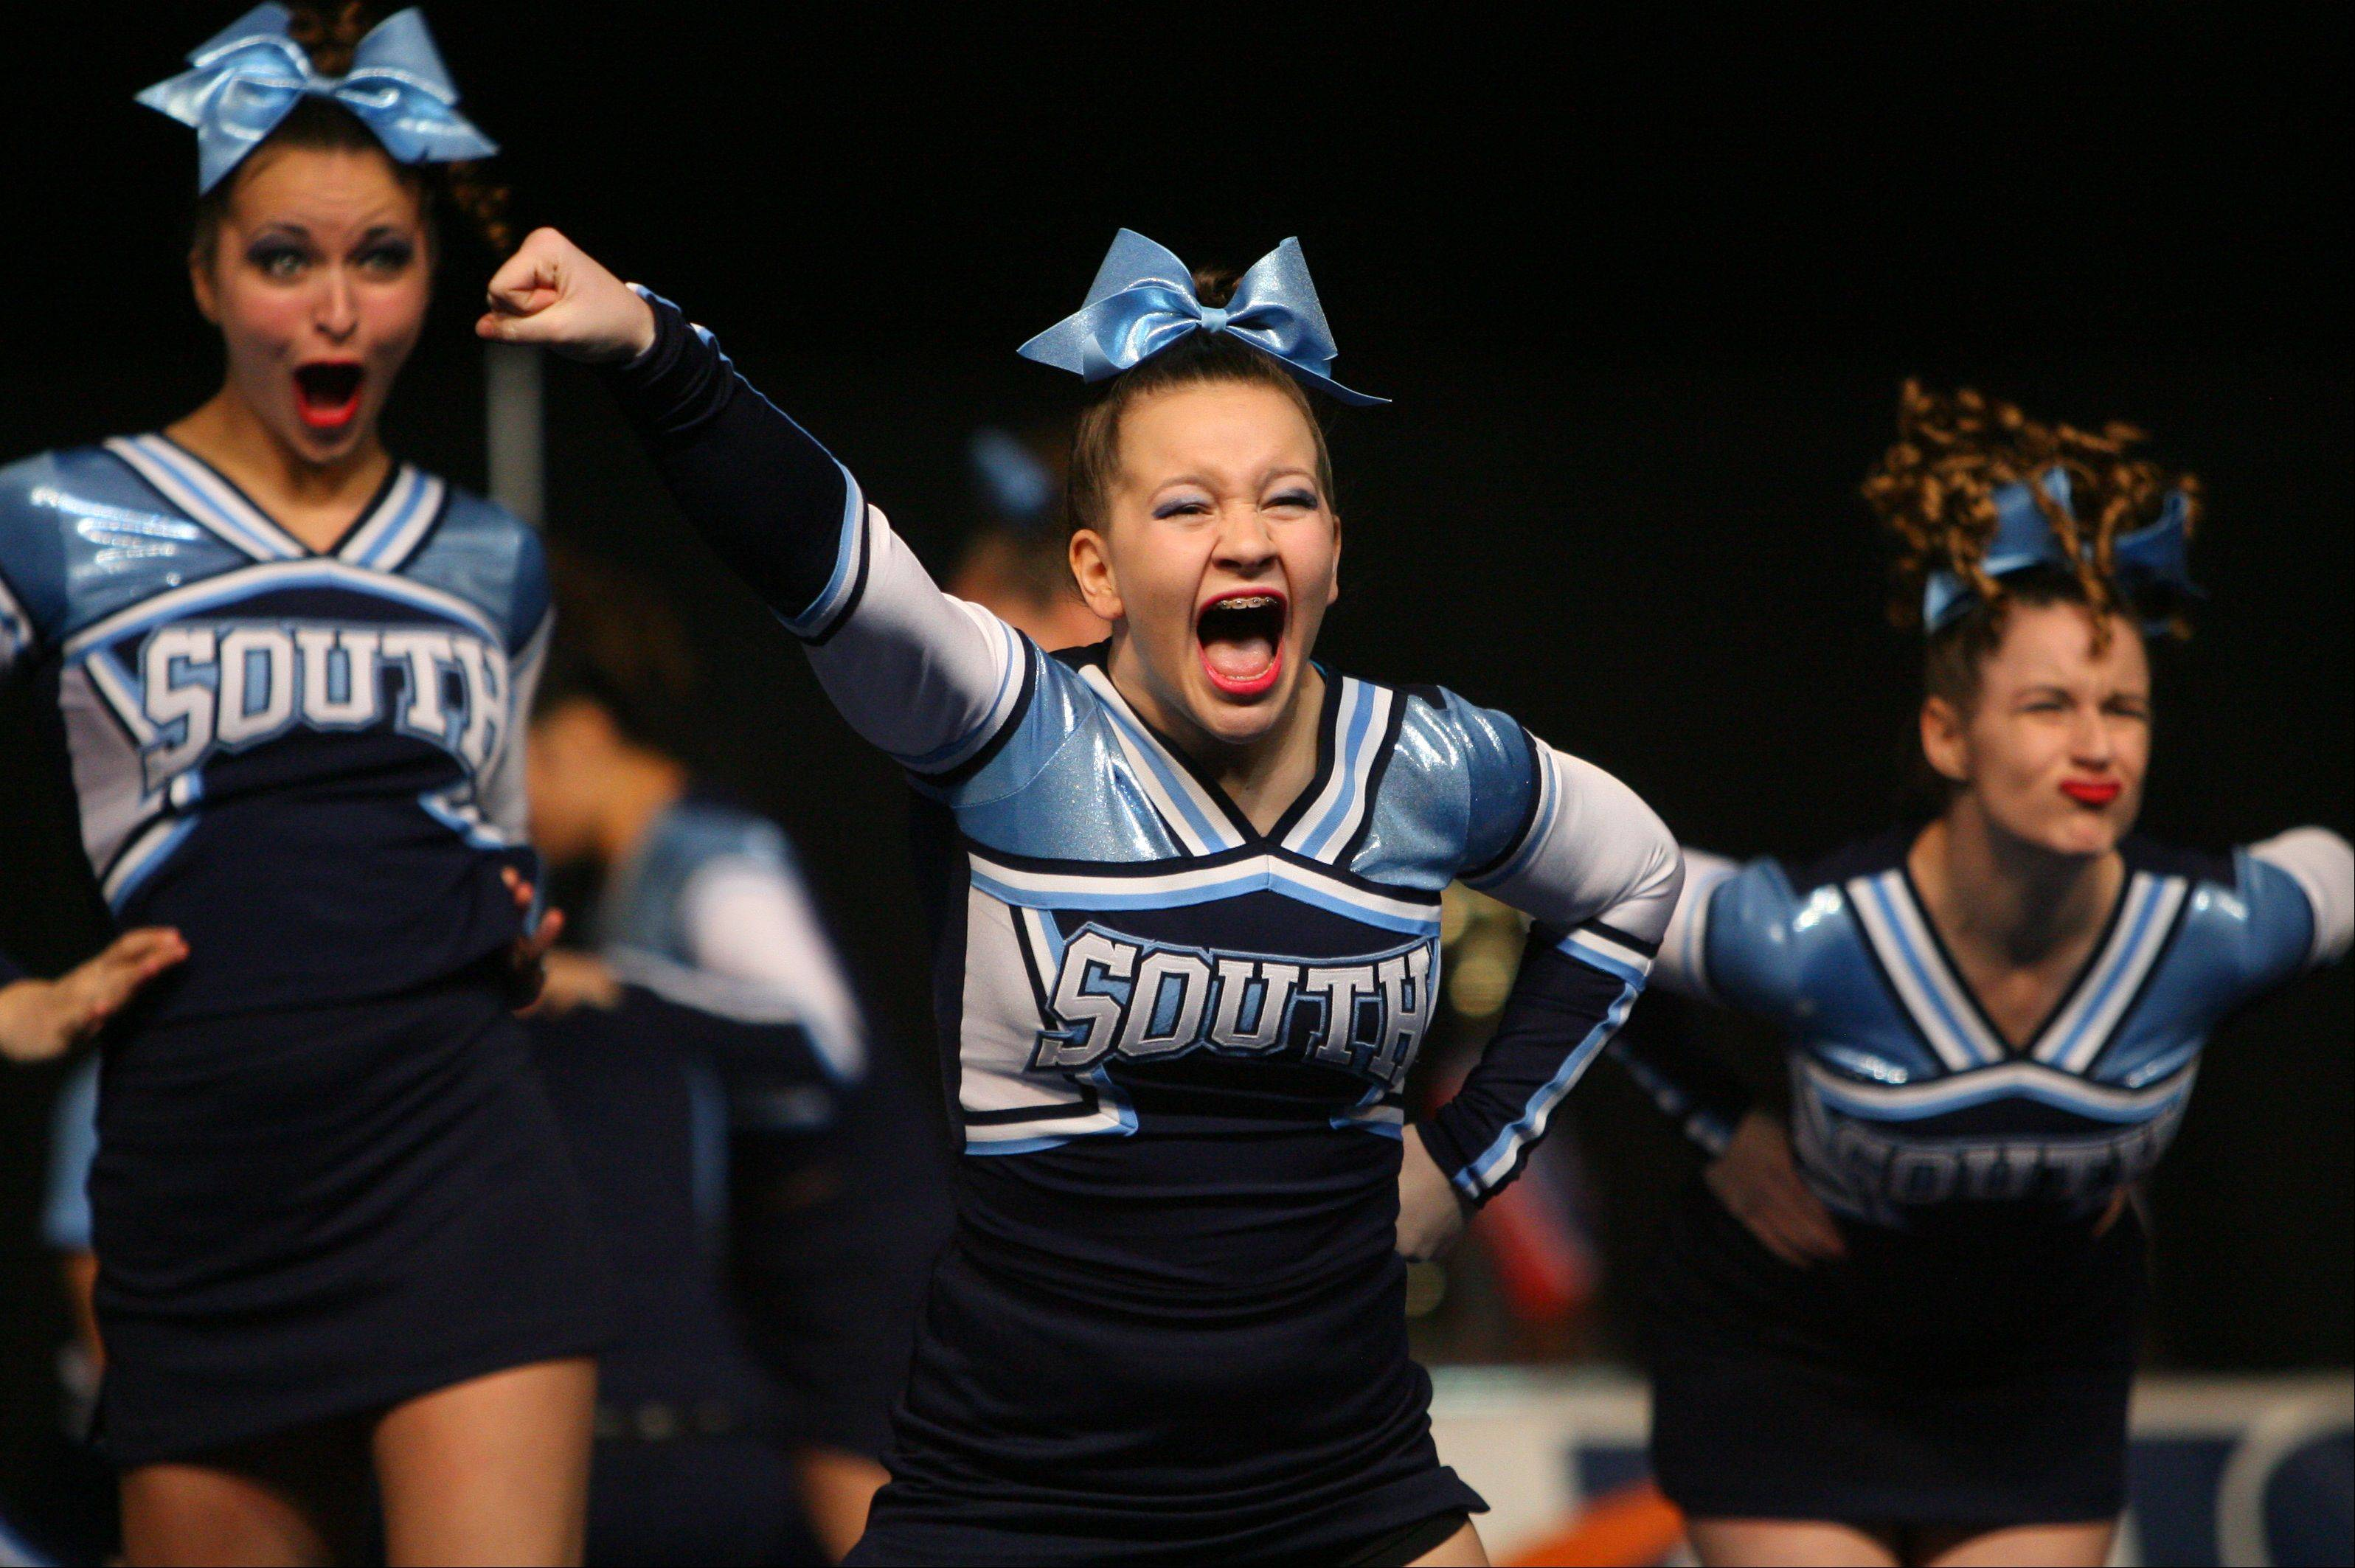 Downers Grove South High School competes in the IHSA Competitive Cheerleading finals on Saturday at the U.S. Cellular Coliseum in Bloomington.